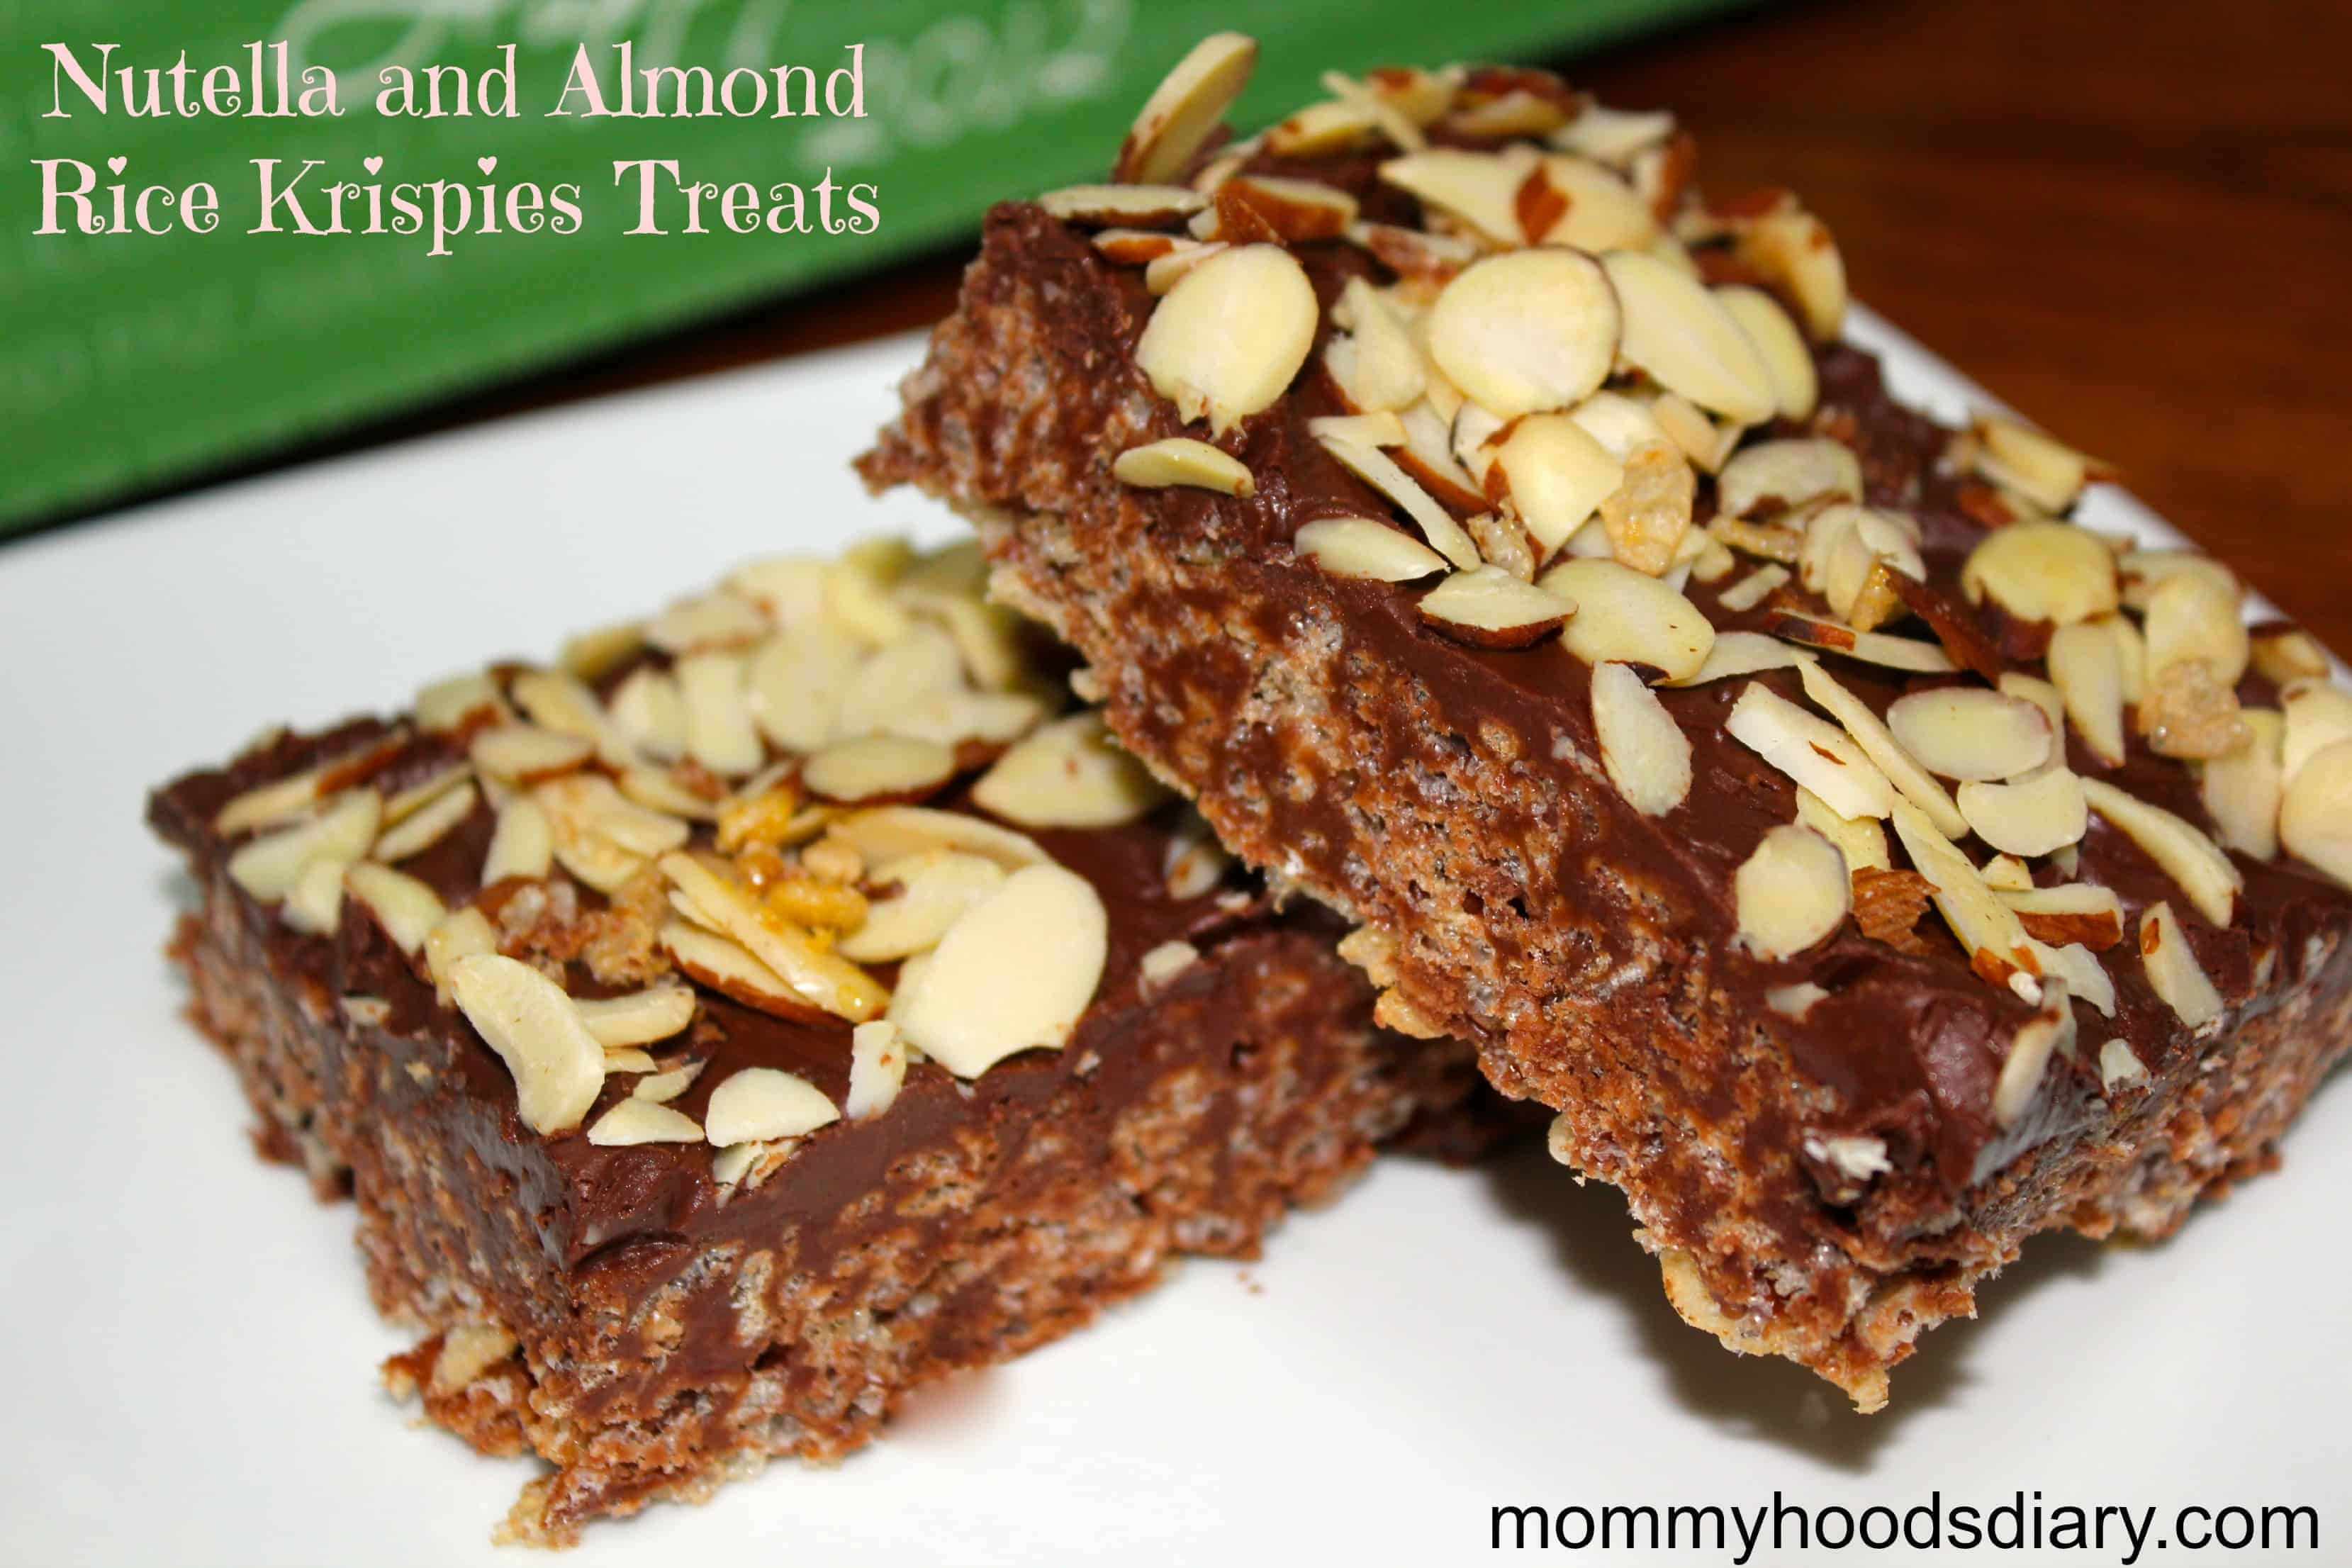 Nutella and Almond Rice Krispies Treats